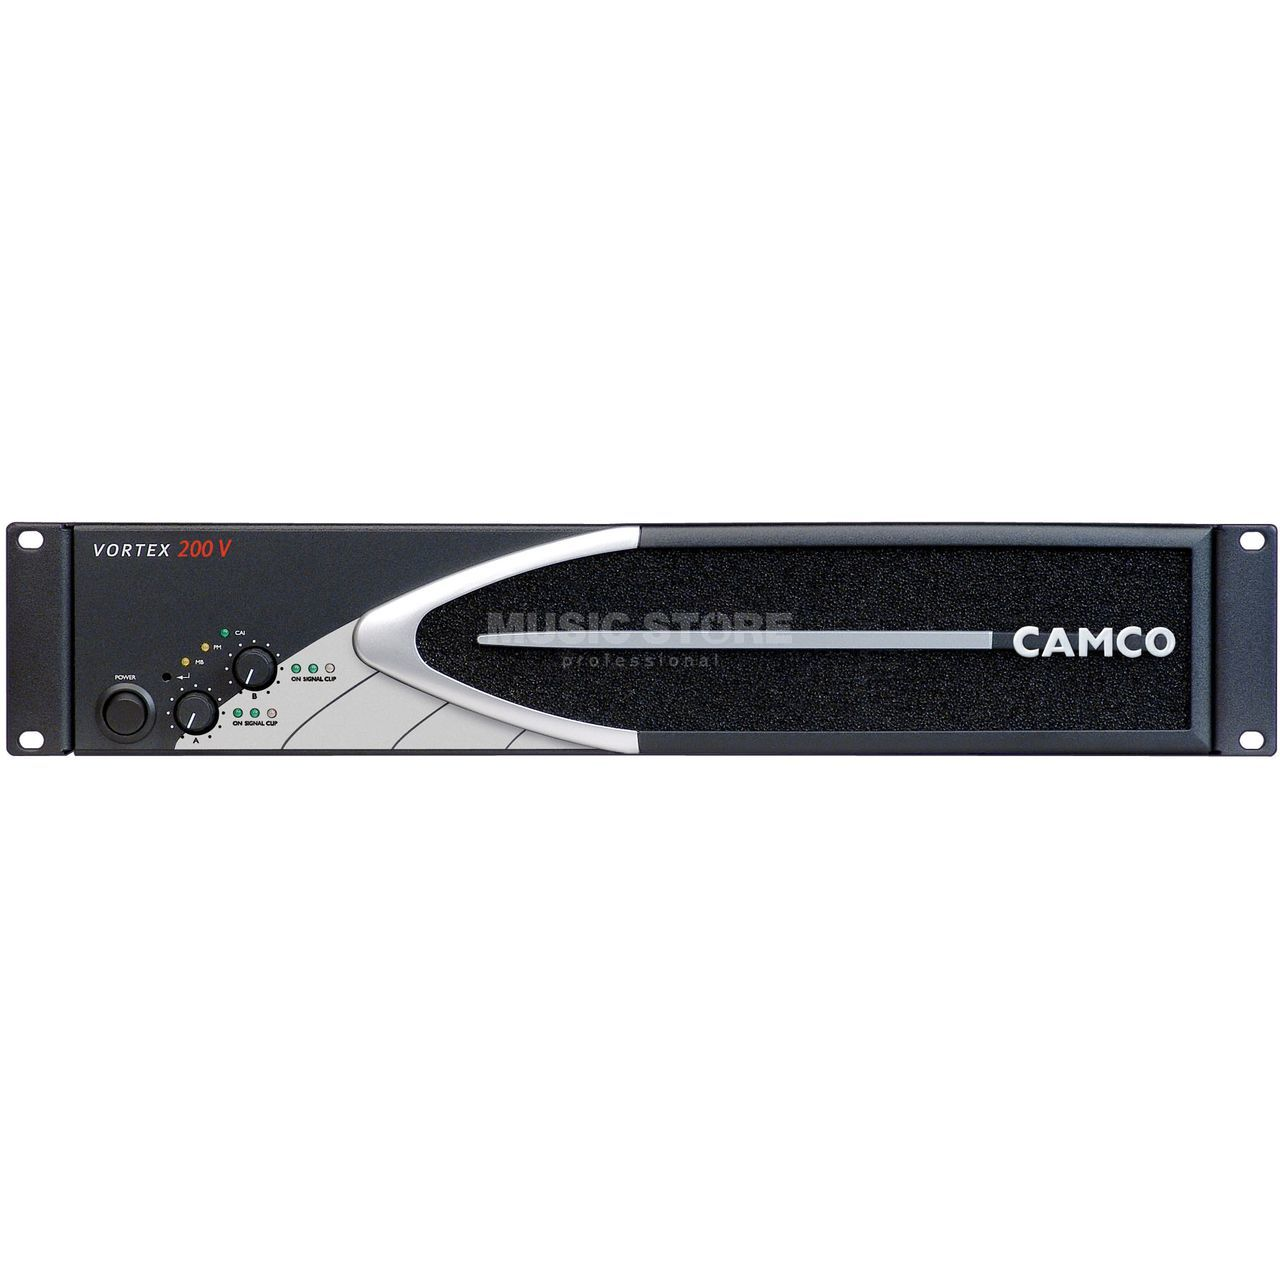 Camco Vortex 200v Amplifier 2x 3100 Watt 4 Ohm Music Store Professional En Fi